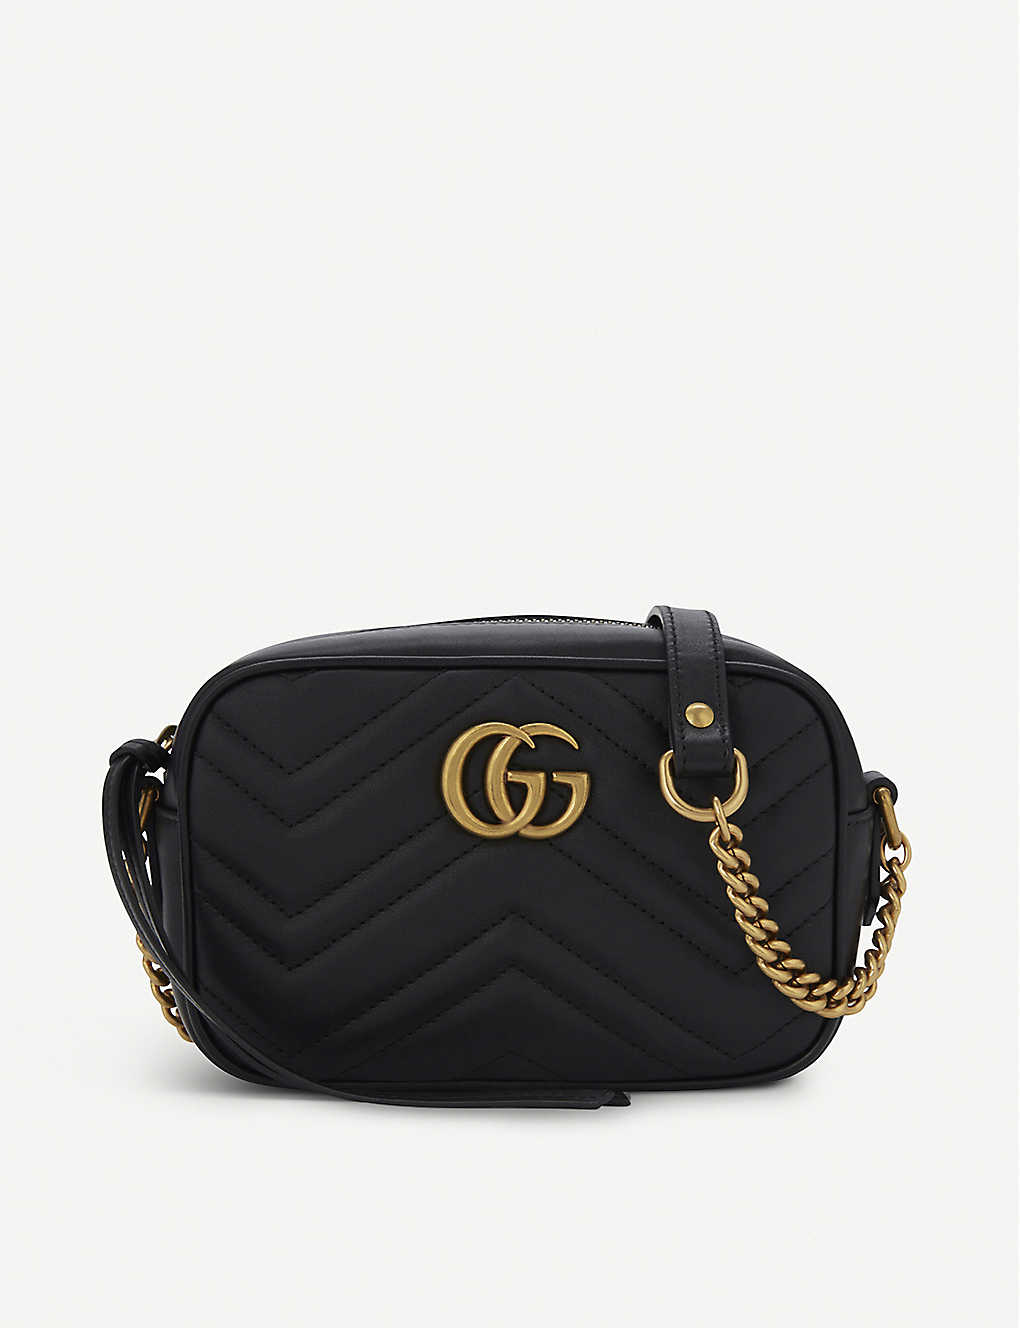 626a8269a4cd GUCCI - GG Marmont mini quilted leather cross-body bag